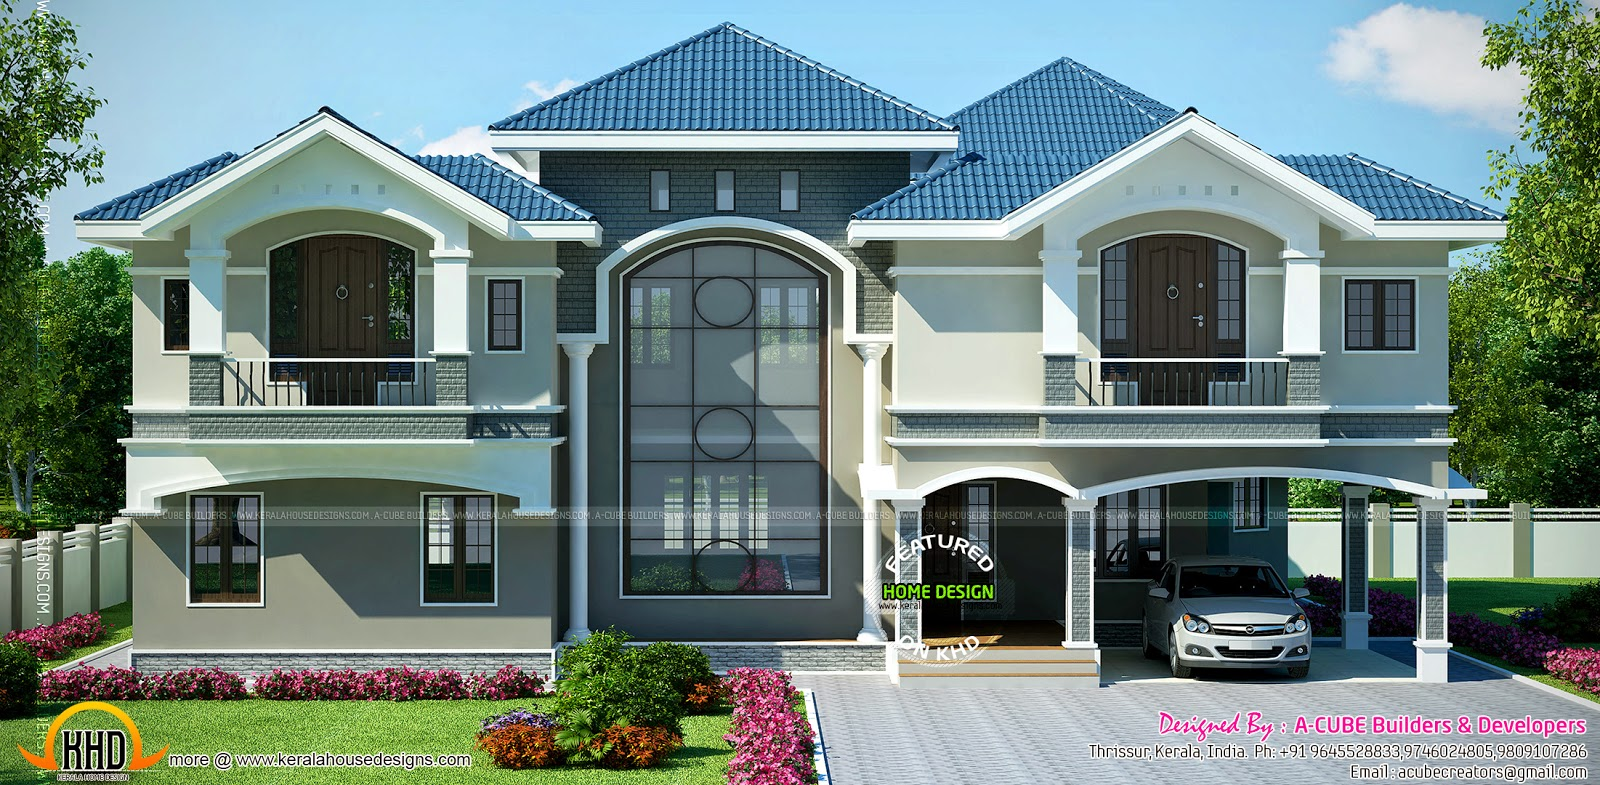 Super luxury house in beautiful style kerala home design for Luxury home designers